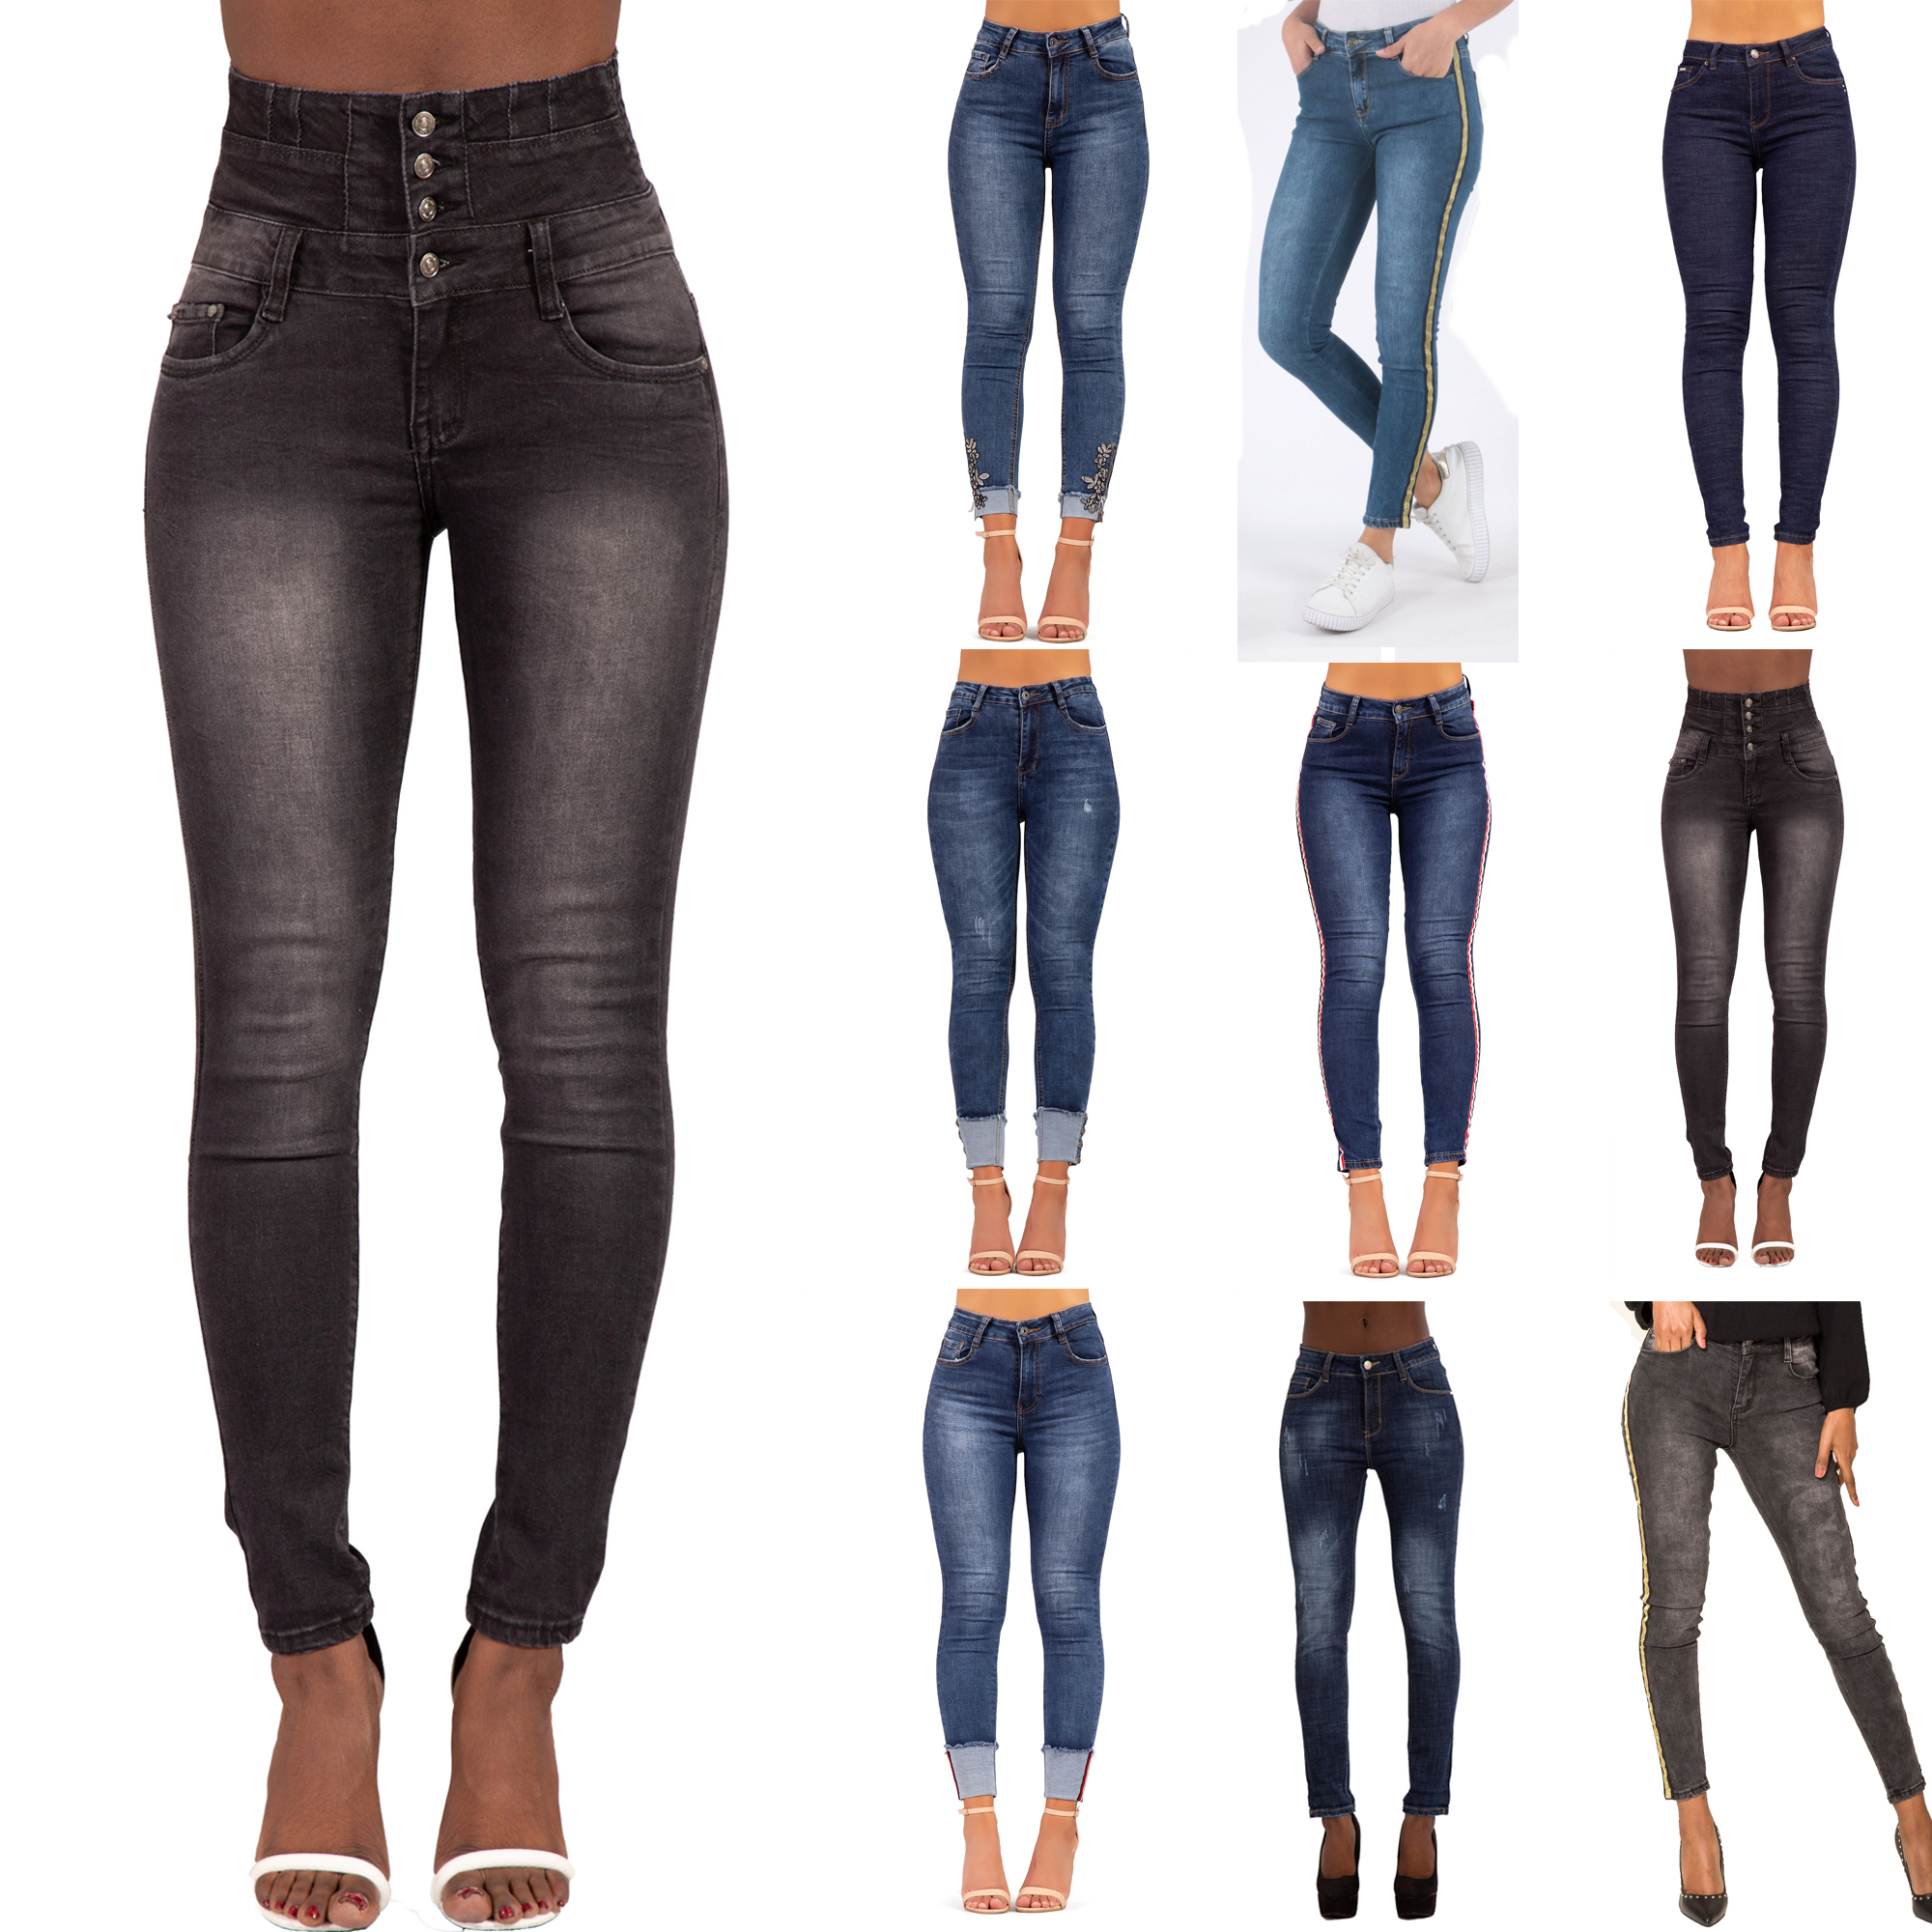 WOMENS HIGH WAISTED SKINNY JEANS STRETCH SKINNY HIGH RISE PANTS